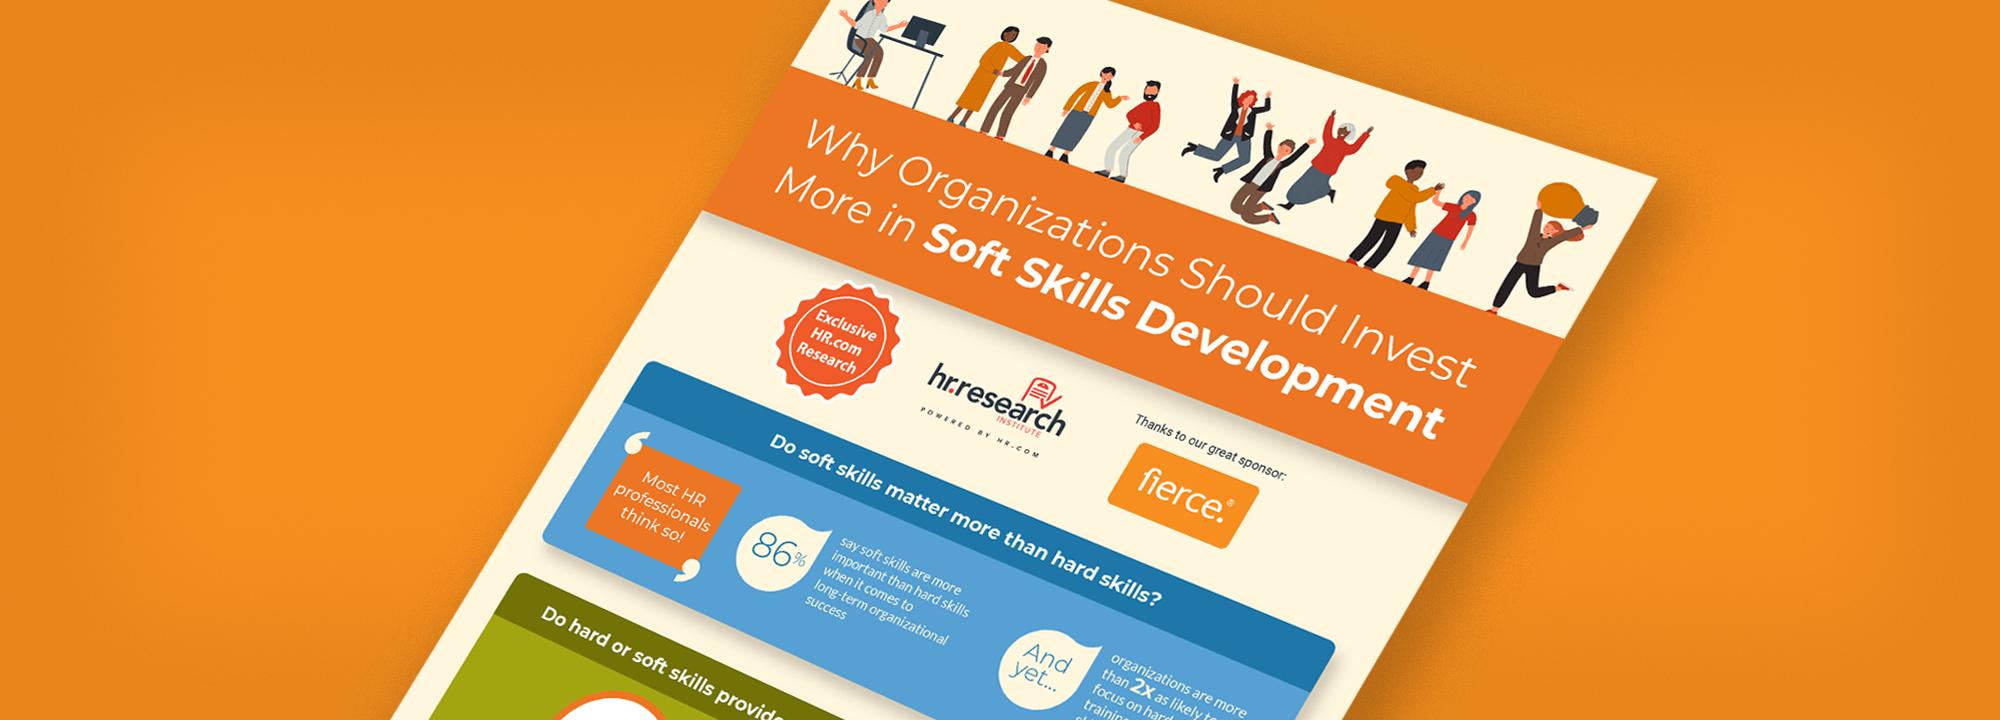 Fierce Conversations Infographic Why Organizations Should Invest in Soft Skills Development